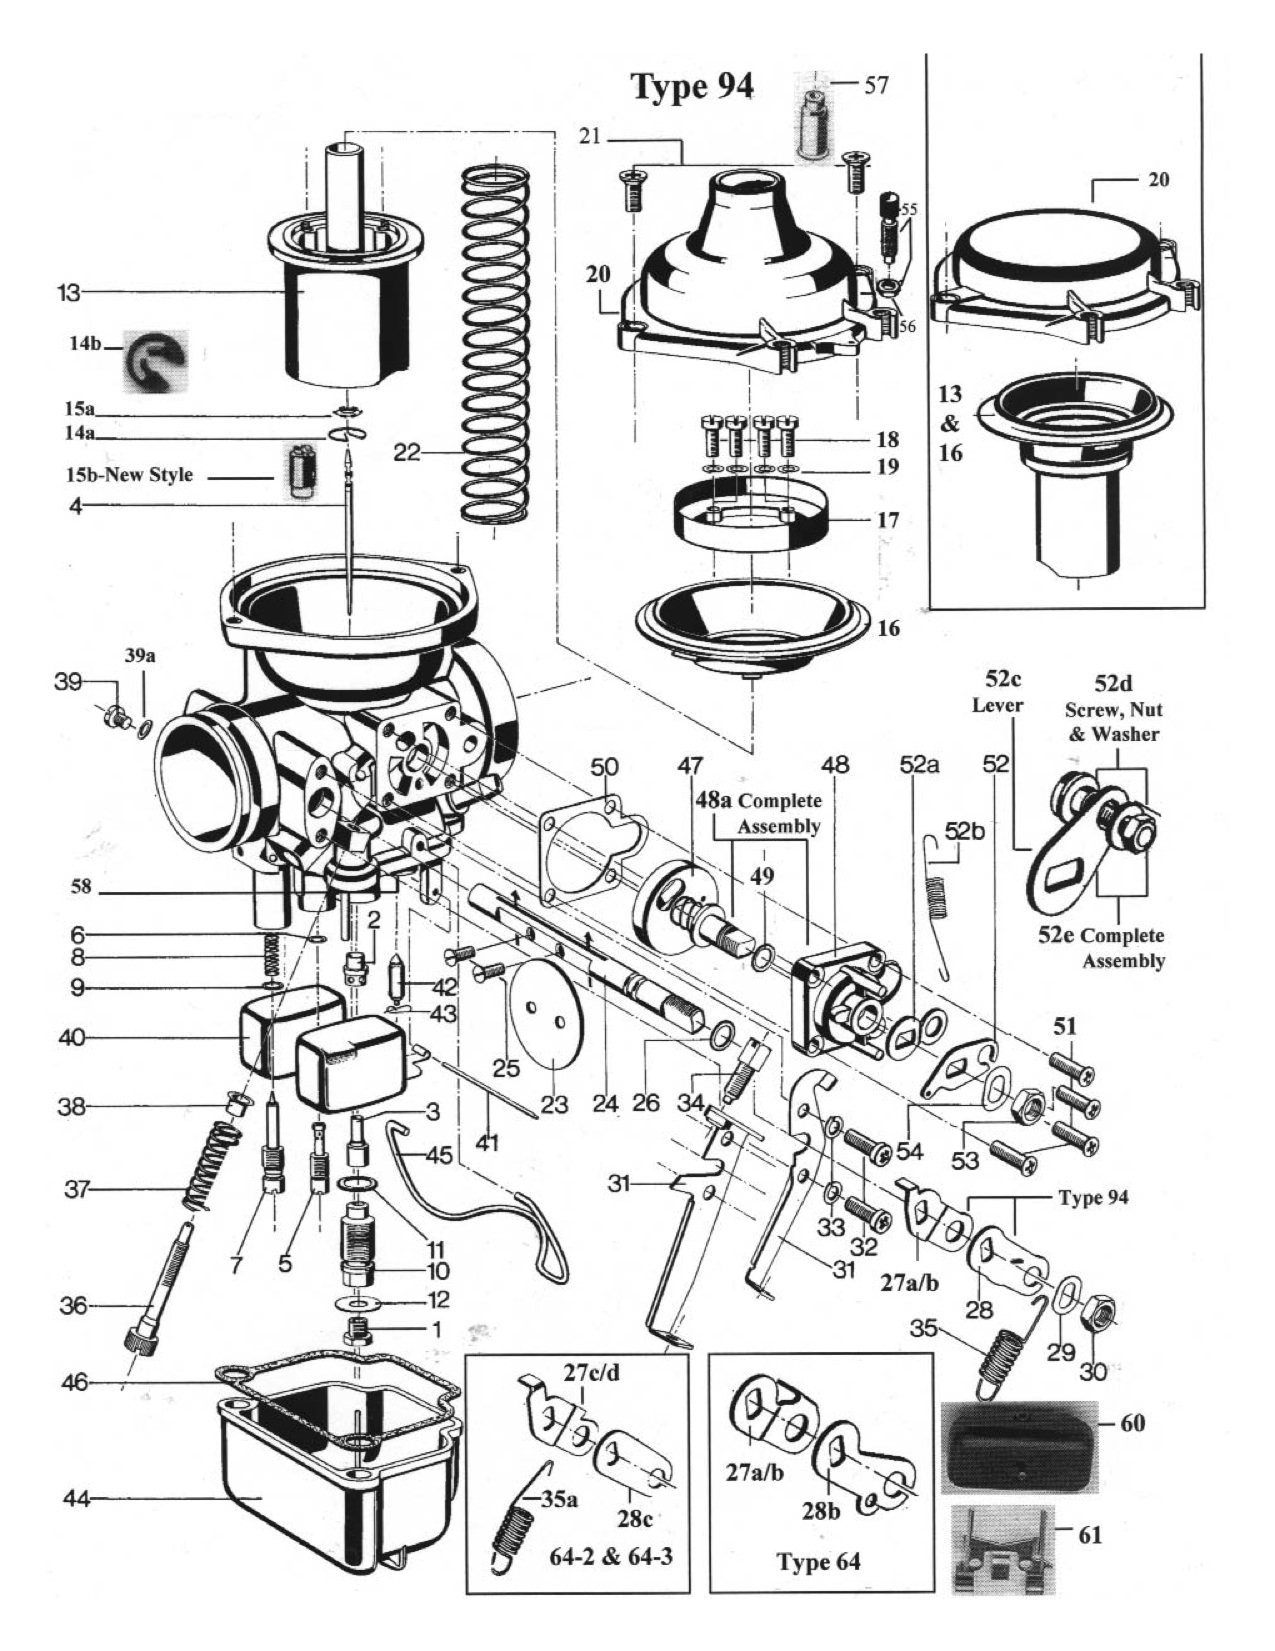 2000 Arctic Cat 300 Wiring Diagram 34 Images For 4x4 Harley Davidson Cv Carburetor